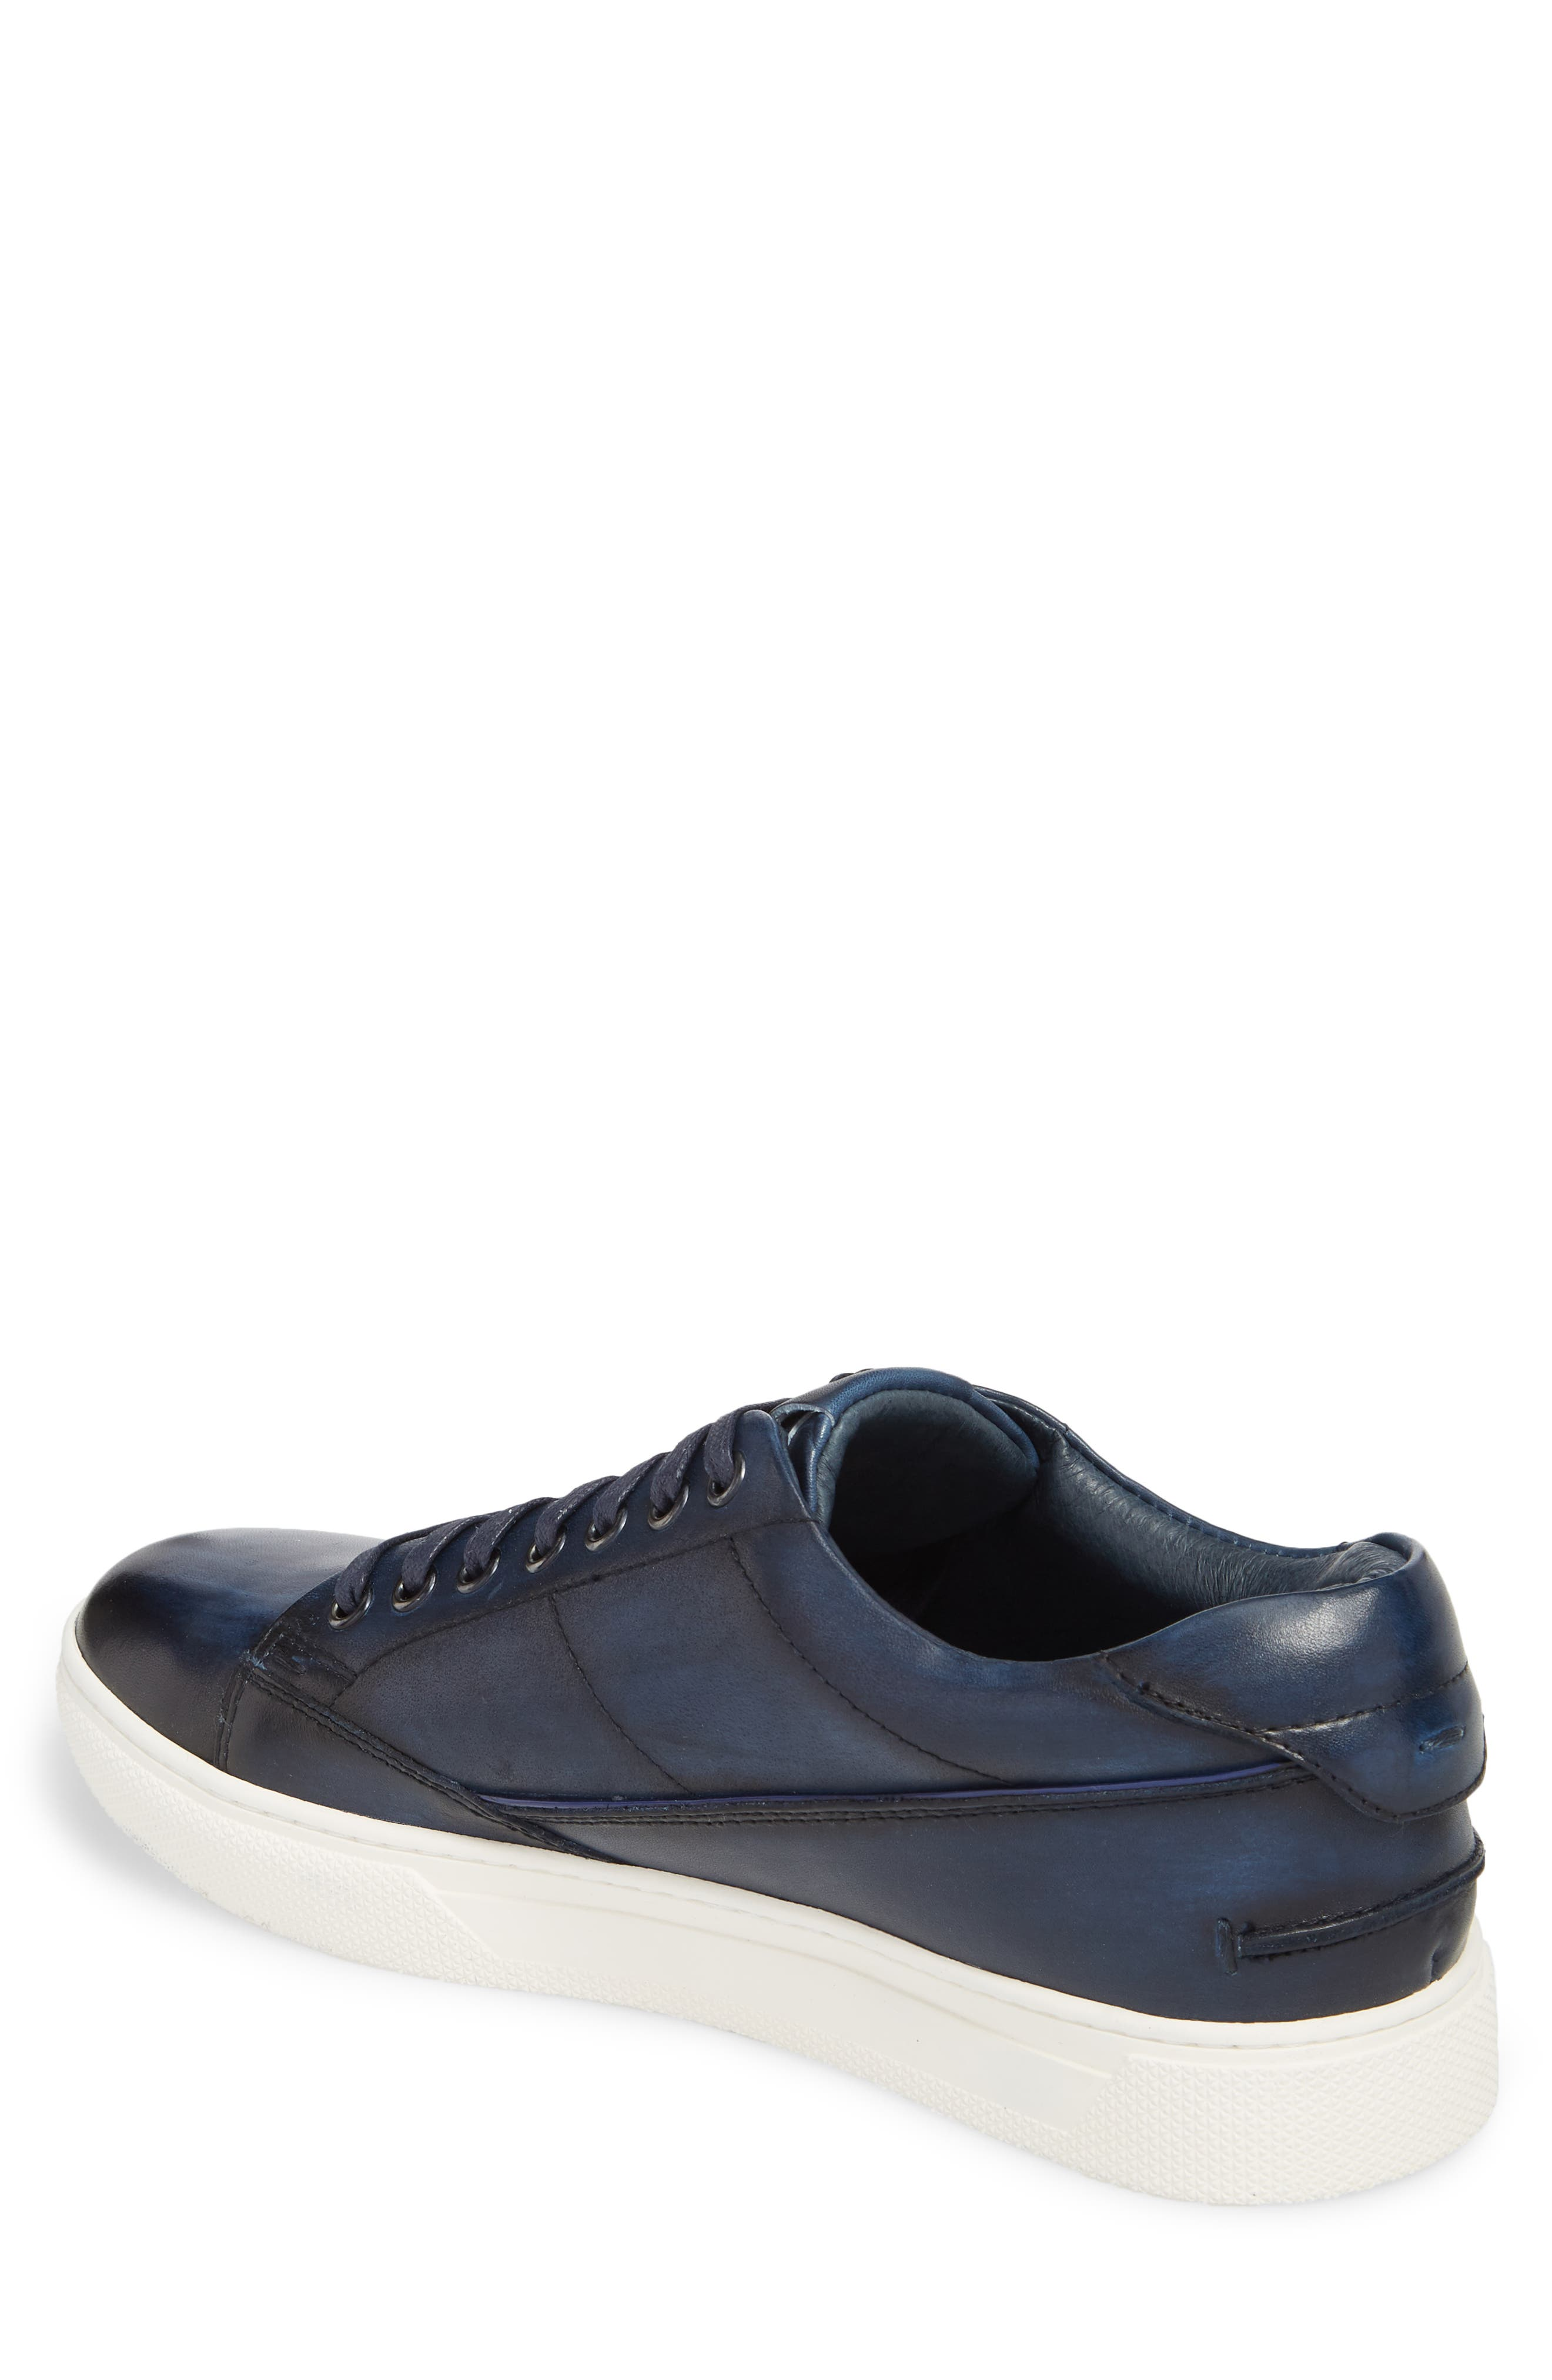 JUMP, Sweeney Low Top Sneaker, Alternate thumbnail 2, color, NAVY LEATHER